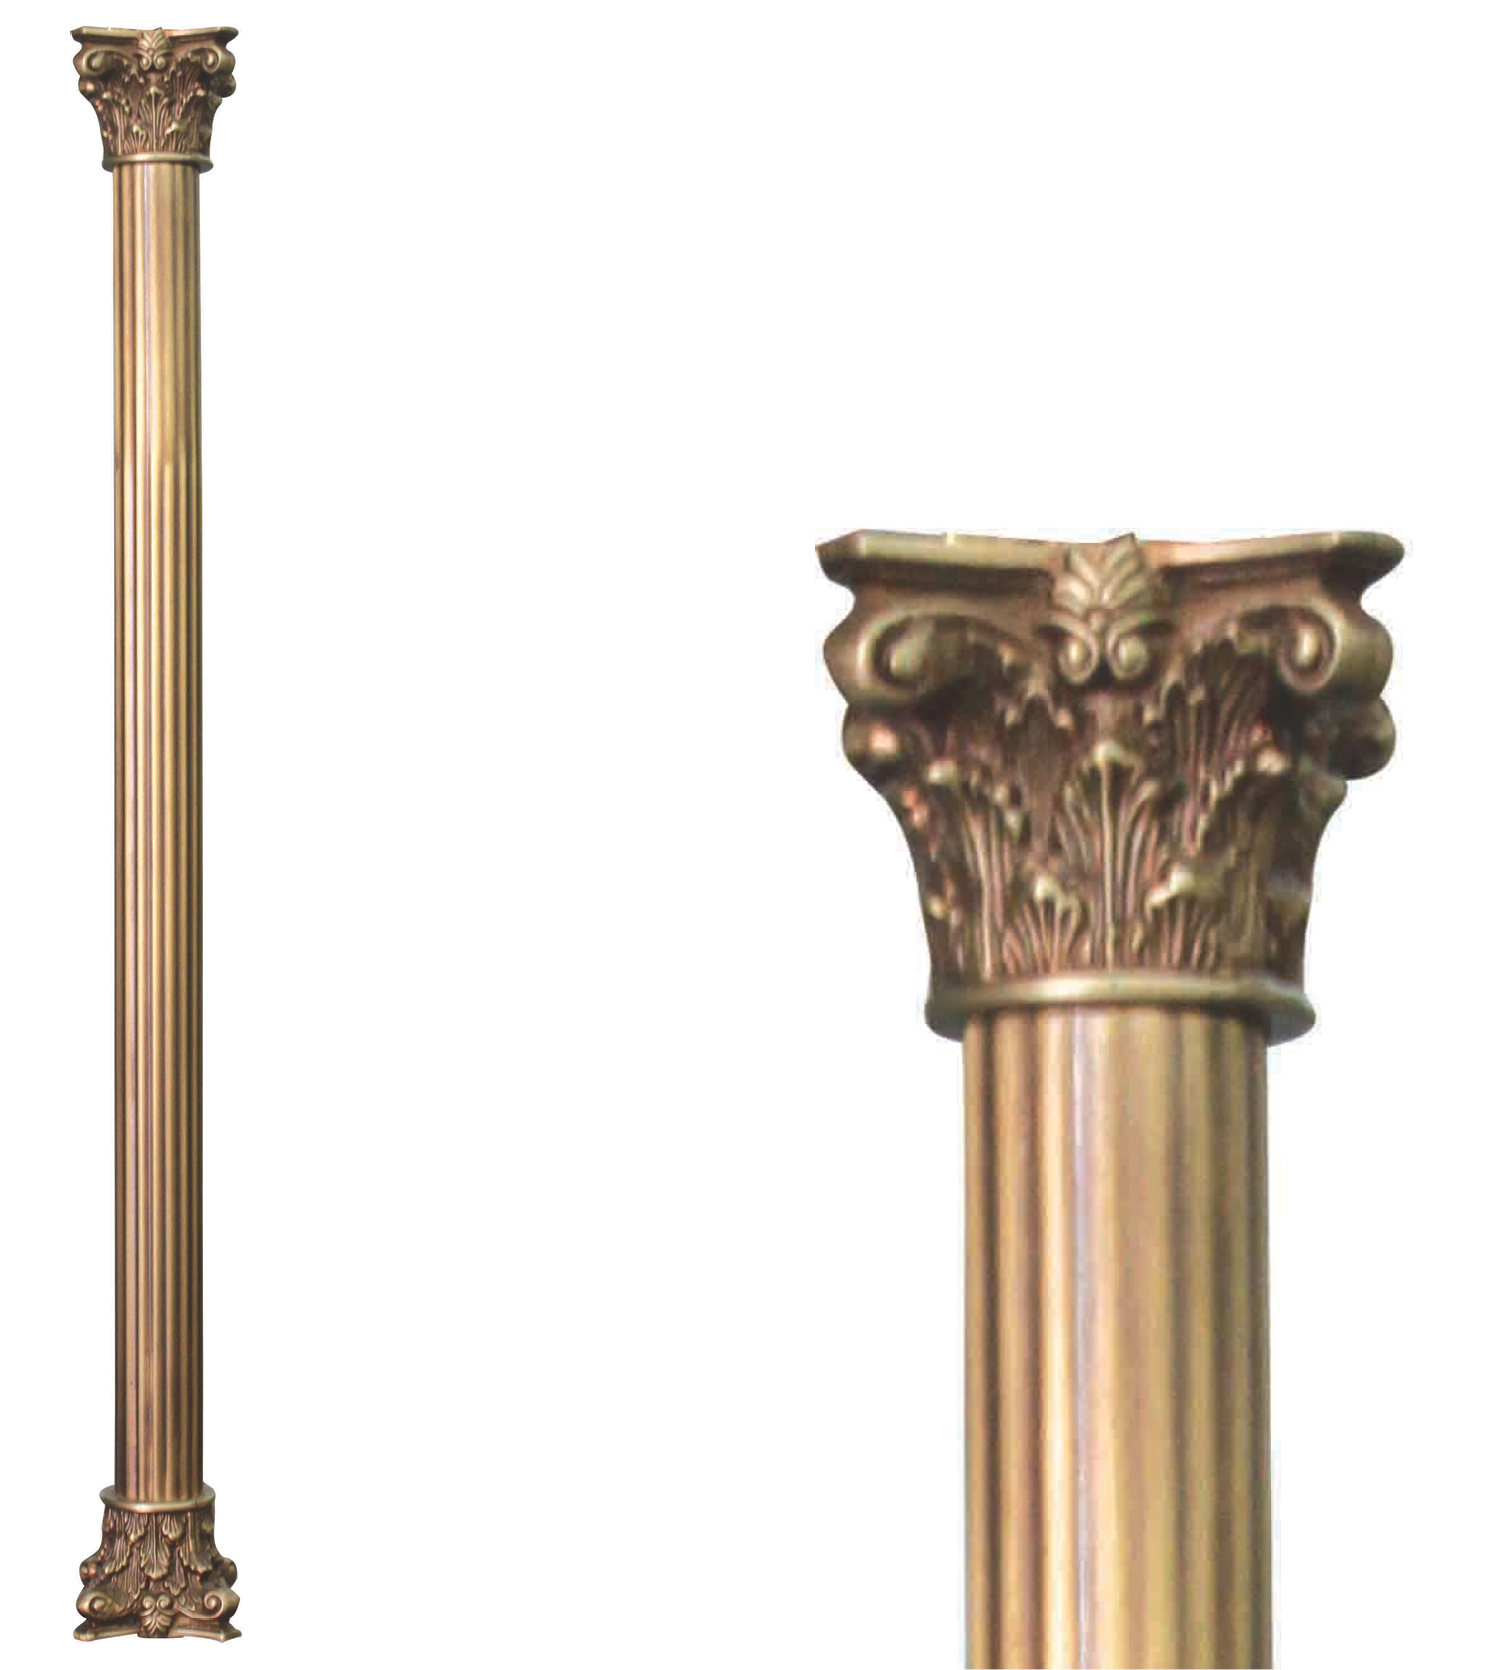 Luxury main door pull handle and locks for glass and wooden doors  for homes